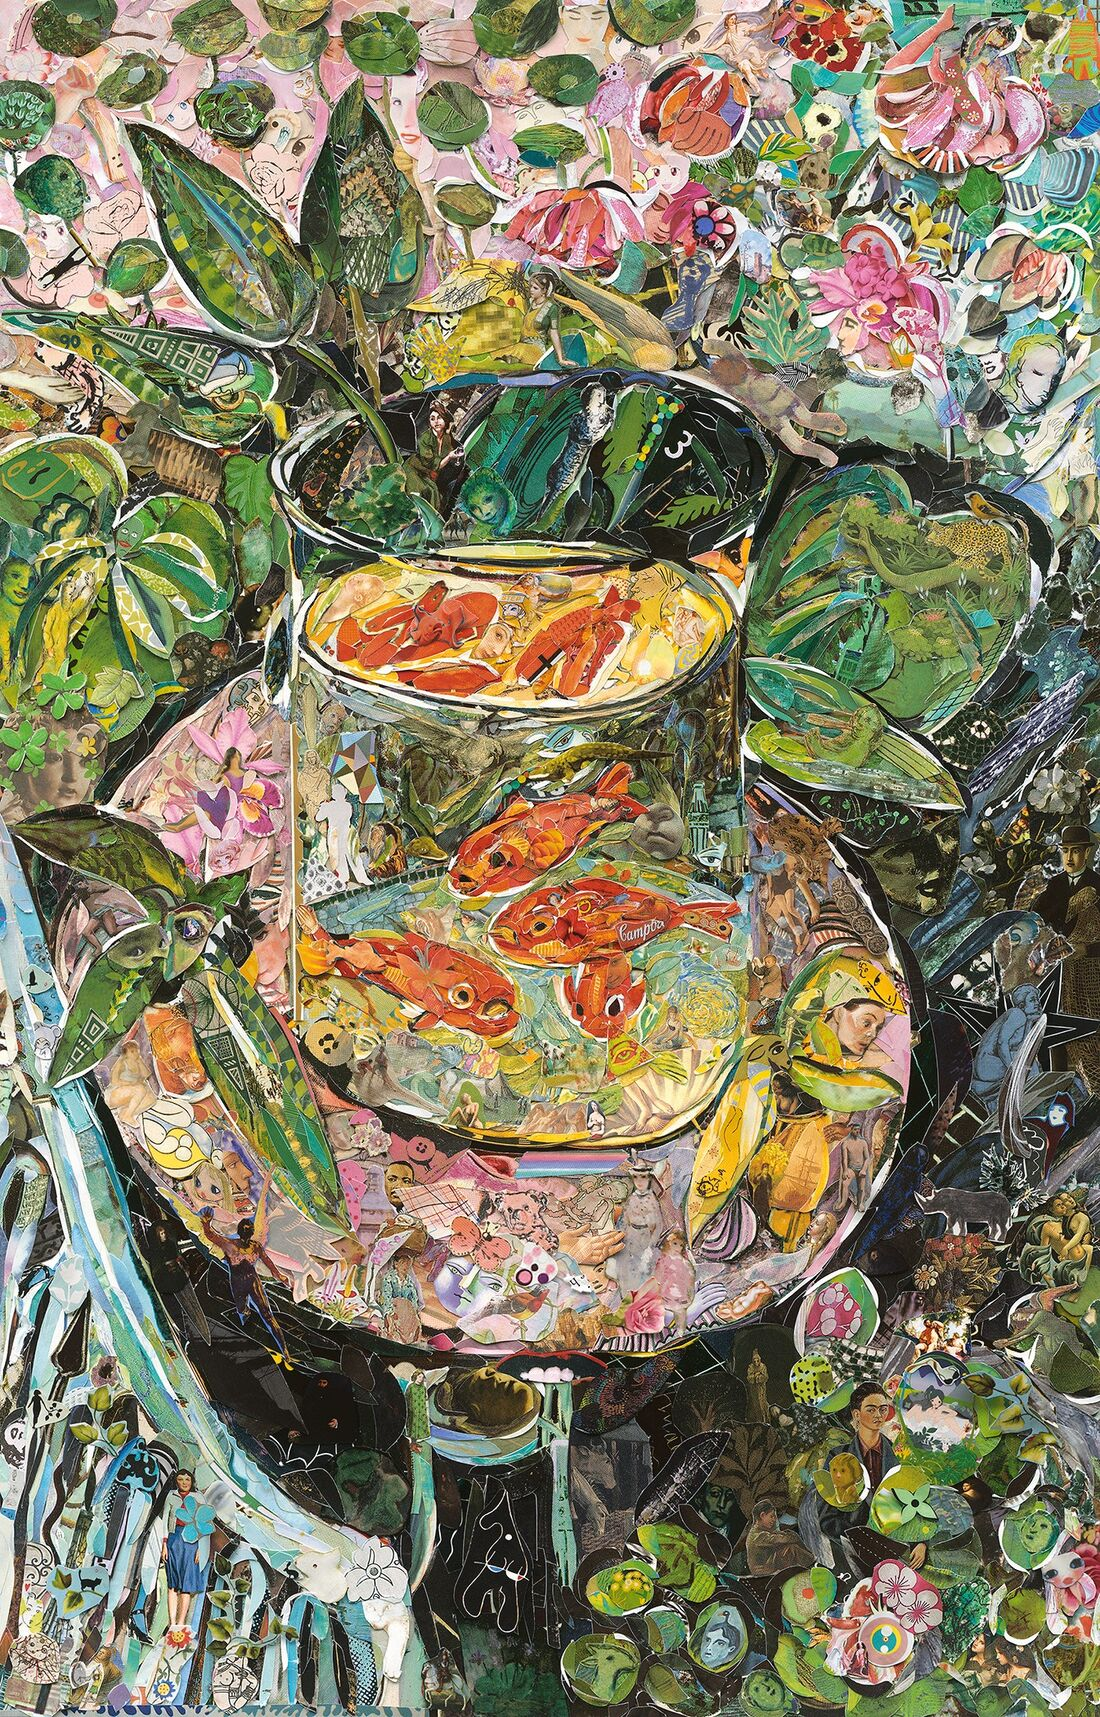 VIK MUNIZ, The Goldfish, after Matisse, 2016. Courtesy of Matthew Liu Fine Arts (Shanghai).